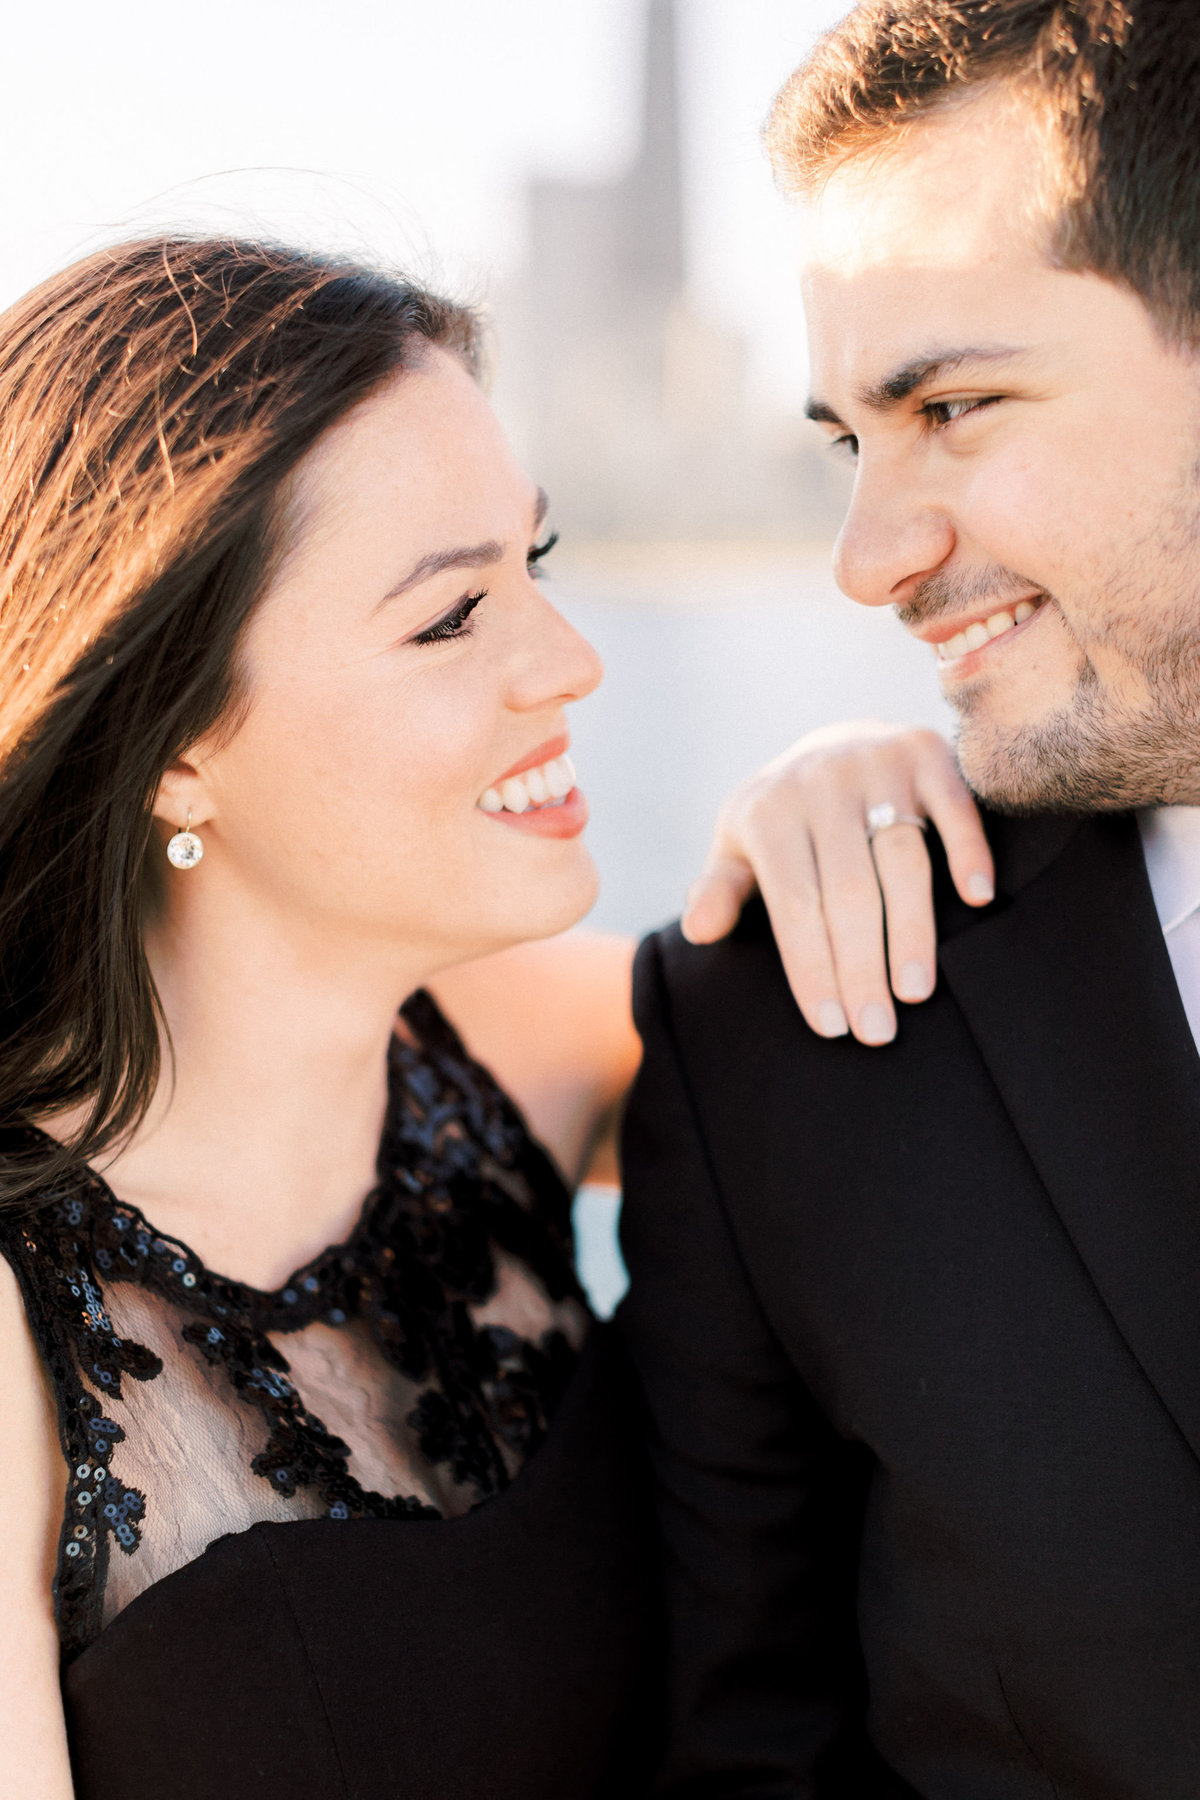 TiffaneyChildsPhotography-ChicagoWeddingPhotographer-Alana+Giancarlo-NorthAvenueBeachUnionStationEngagementSession-15